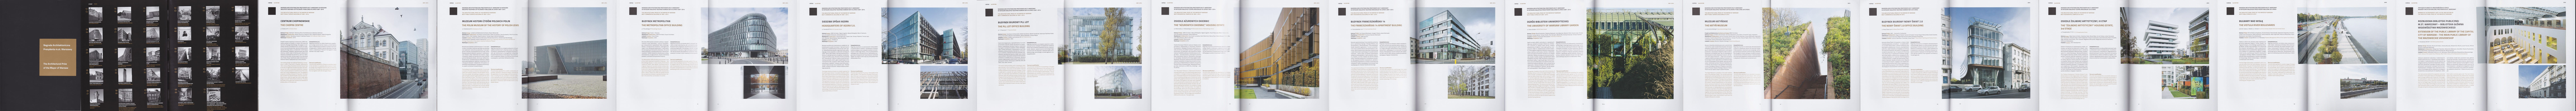 Architectural Award of the Capital City of Warsaw - Catalog